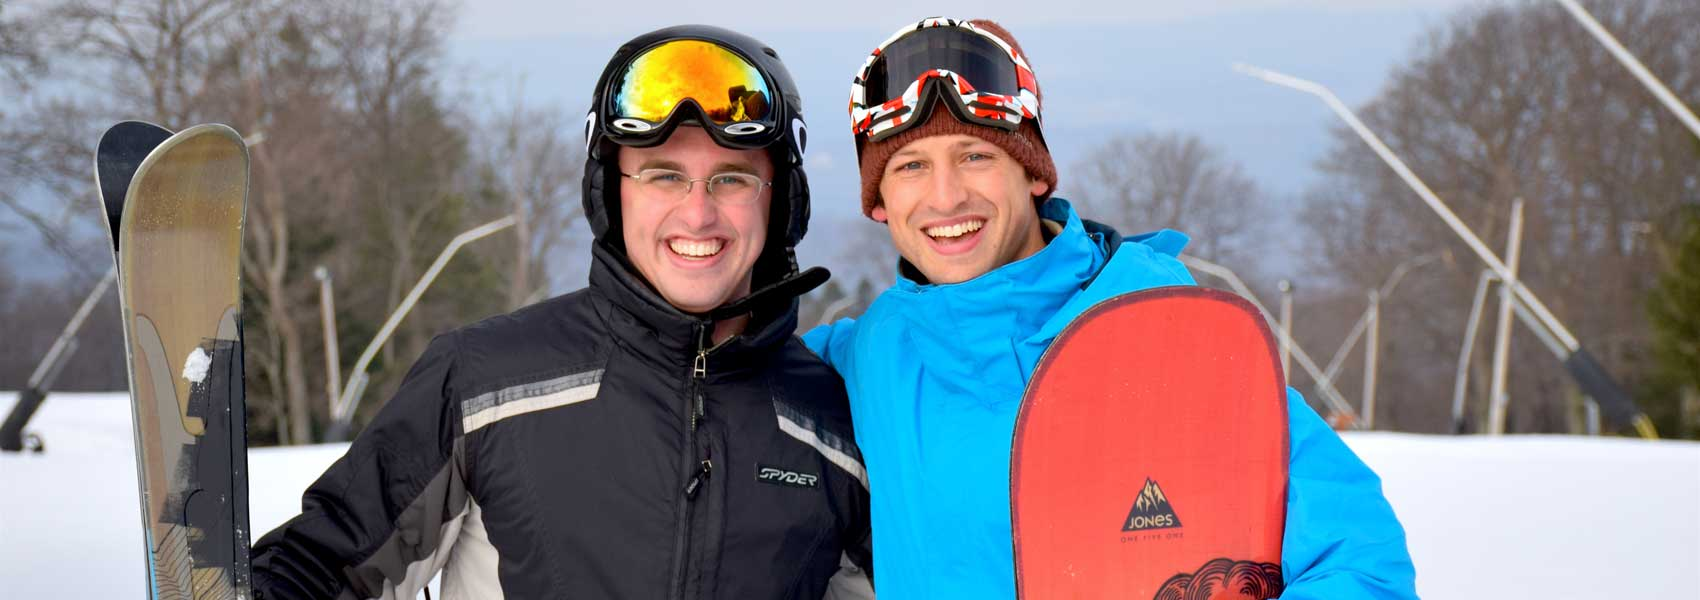 skier-and-boarder-at-laurel-mountain